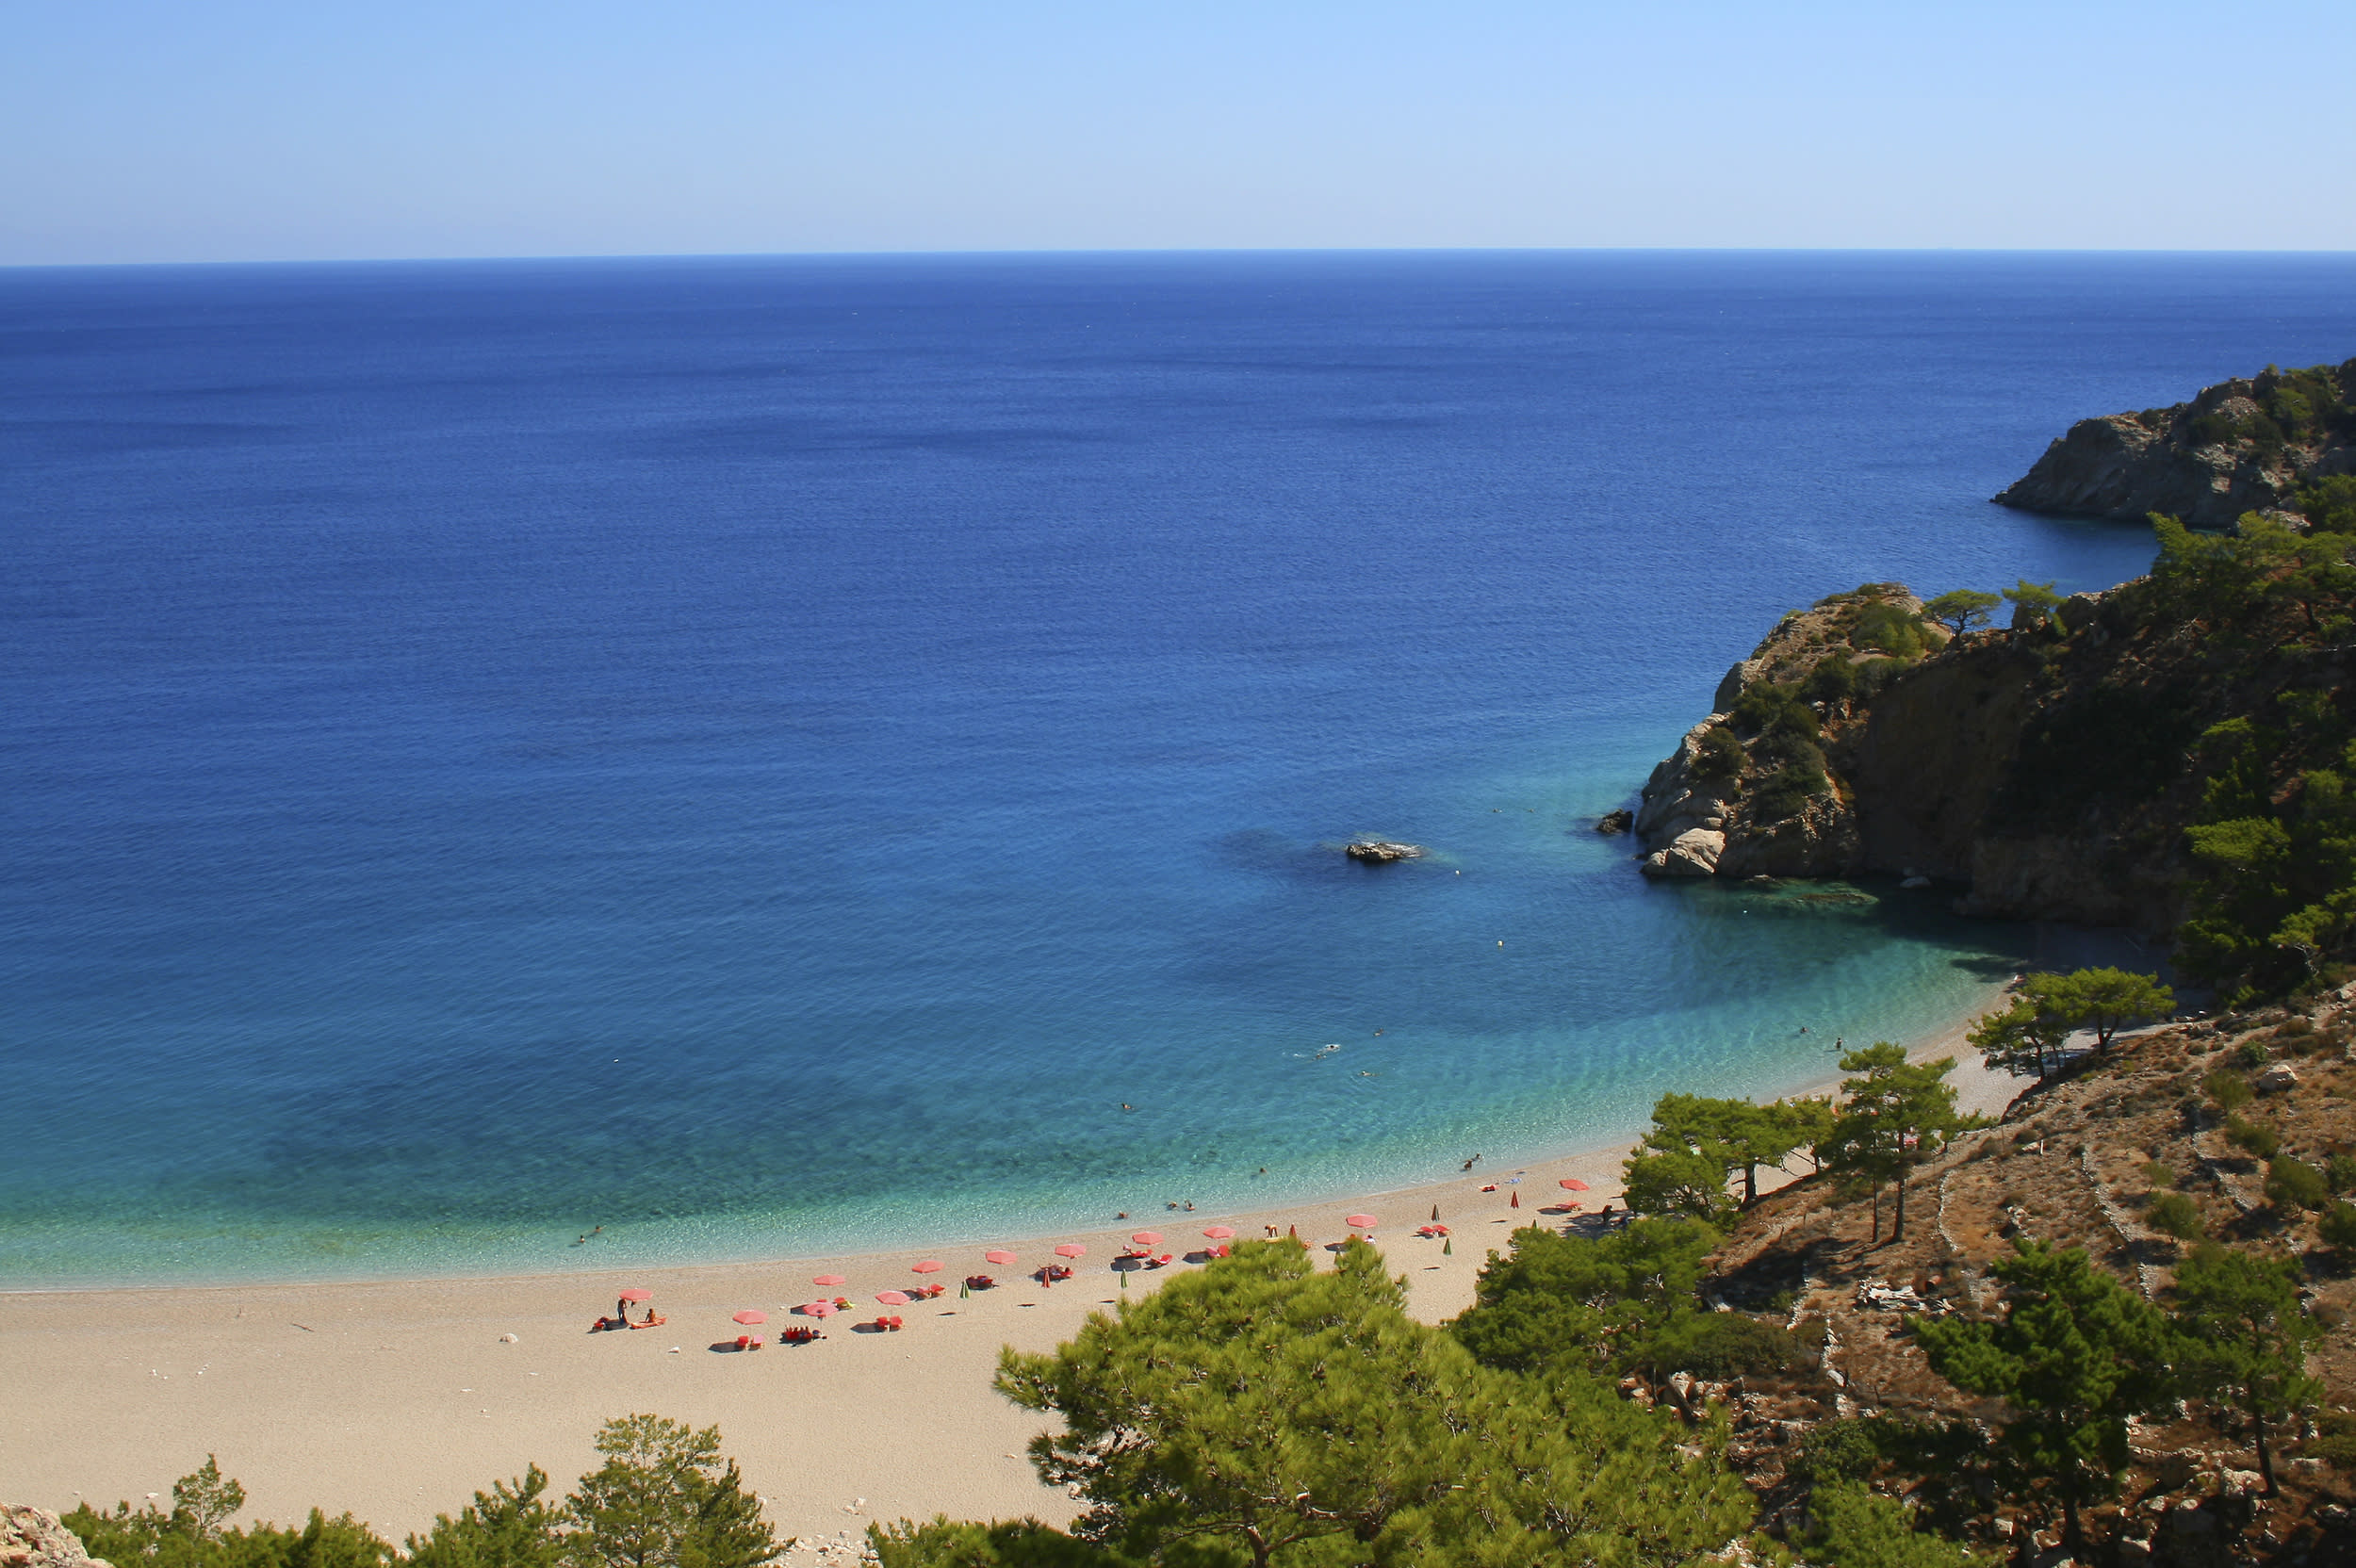 """<p>Karpathos is part of the Dodecanese complex and lies east of <a href=""""http://travel.aol.co.uk/guides/crete/"""" target=""""_blank"""">Crete</a>. It is one of Greece's best-kept secrets, a mountainous island full of fresh water springs, vineyards and pine-tree forests. Karpathos' rock caves are home to Mediterranean monk seals and around the island there are marvellous hiking paths, secluded beaches and pretty villages, such as Othos and Olympos.</p>"""